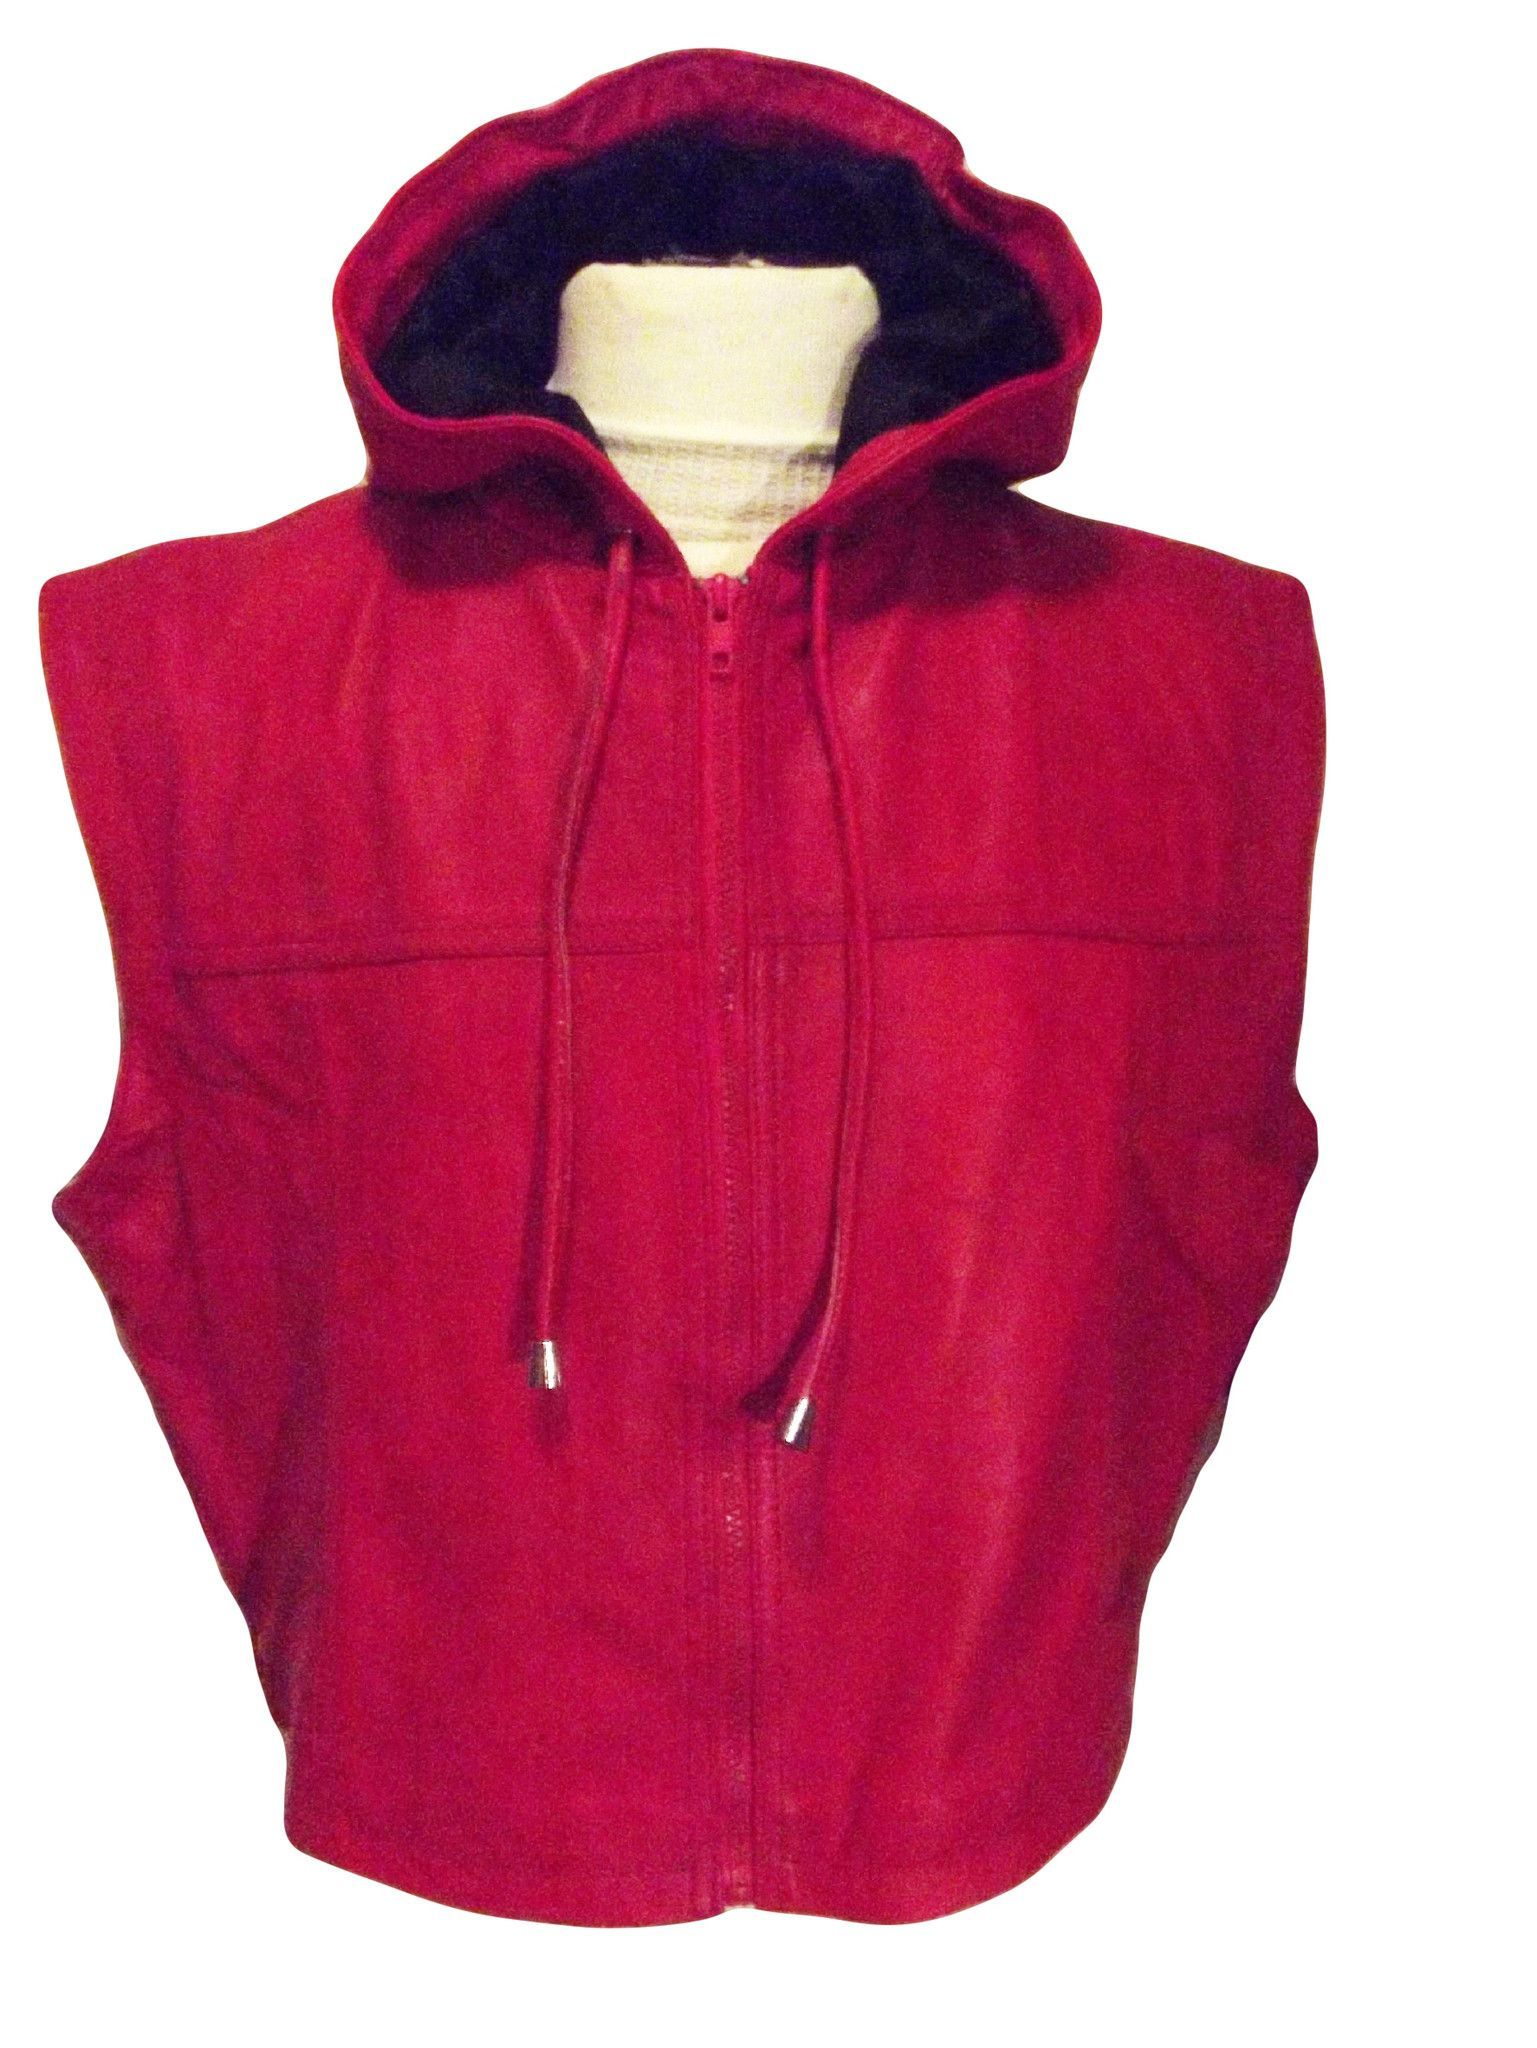 8bf22b8003b859 Mens Red Leather Sleeveless Hooded Hoodie Zip up Custom made Ring Jacket  Wrestling - Boxing